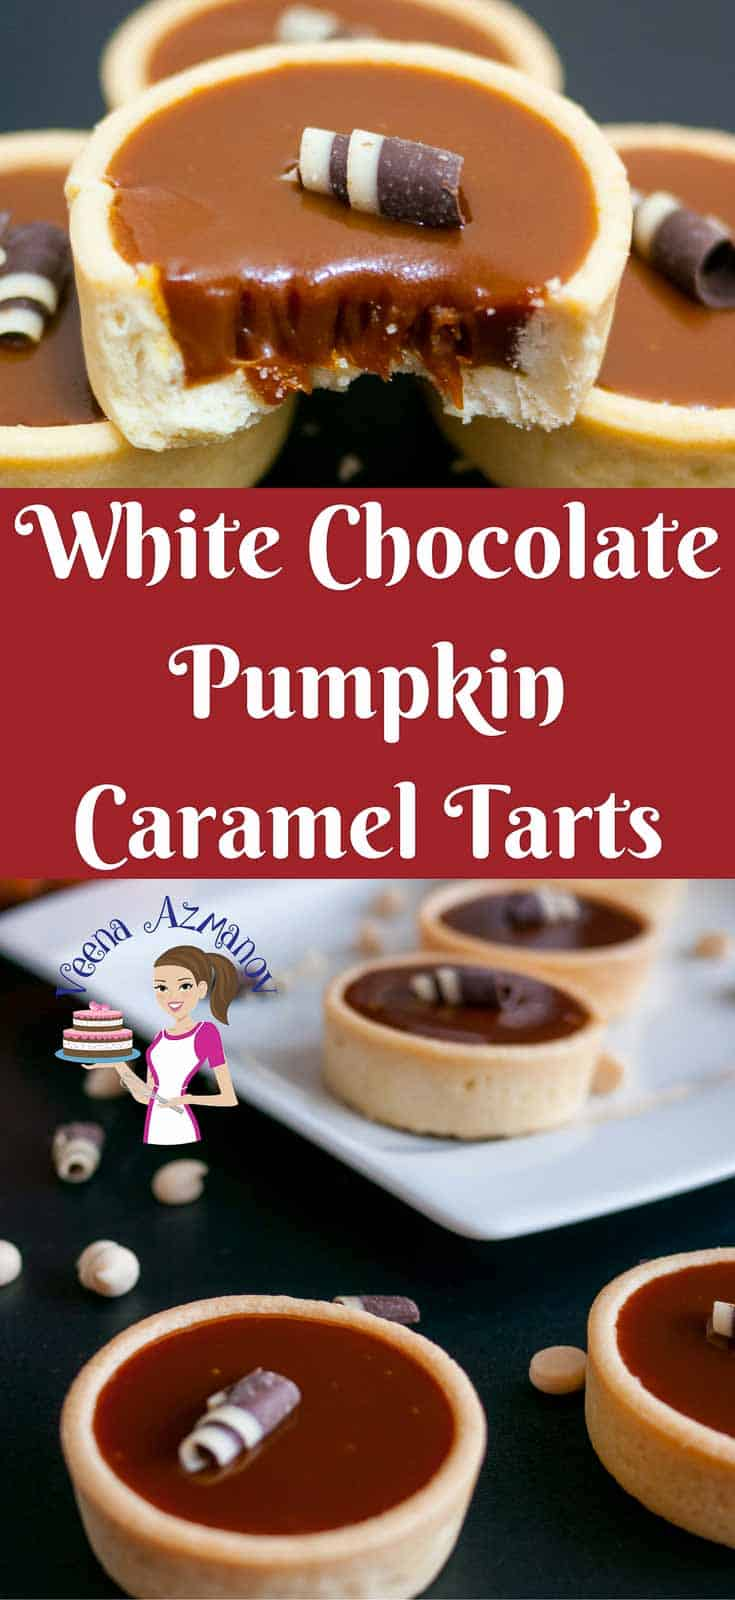 Pinterest friendly image These white chocolate pumpkin caramel tarts made with sweet caramel enriched with the seasons pumpkin puree and pumpkin spice. They are simple easy and effortless. Weather you want to go semi homemade or baked from scratch these are an elegant way to entertain or dress a dessert table.